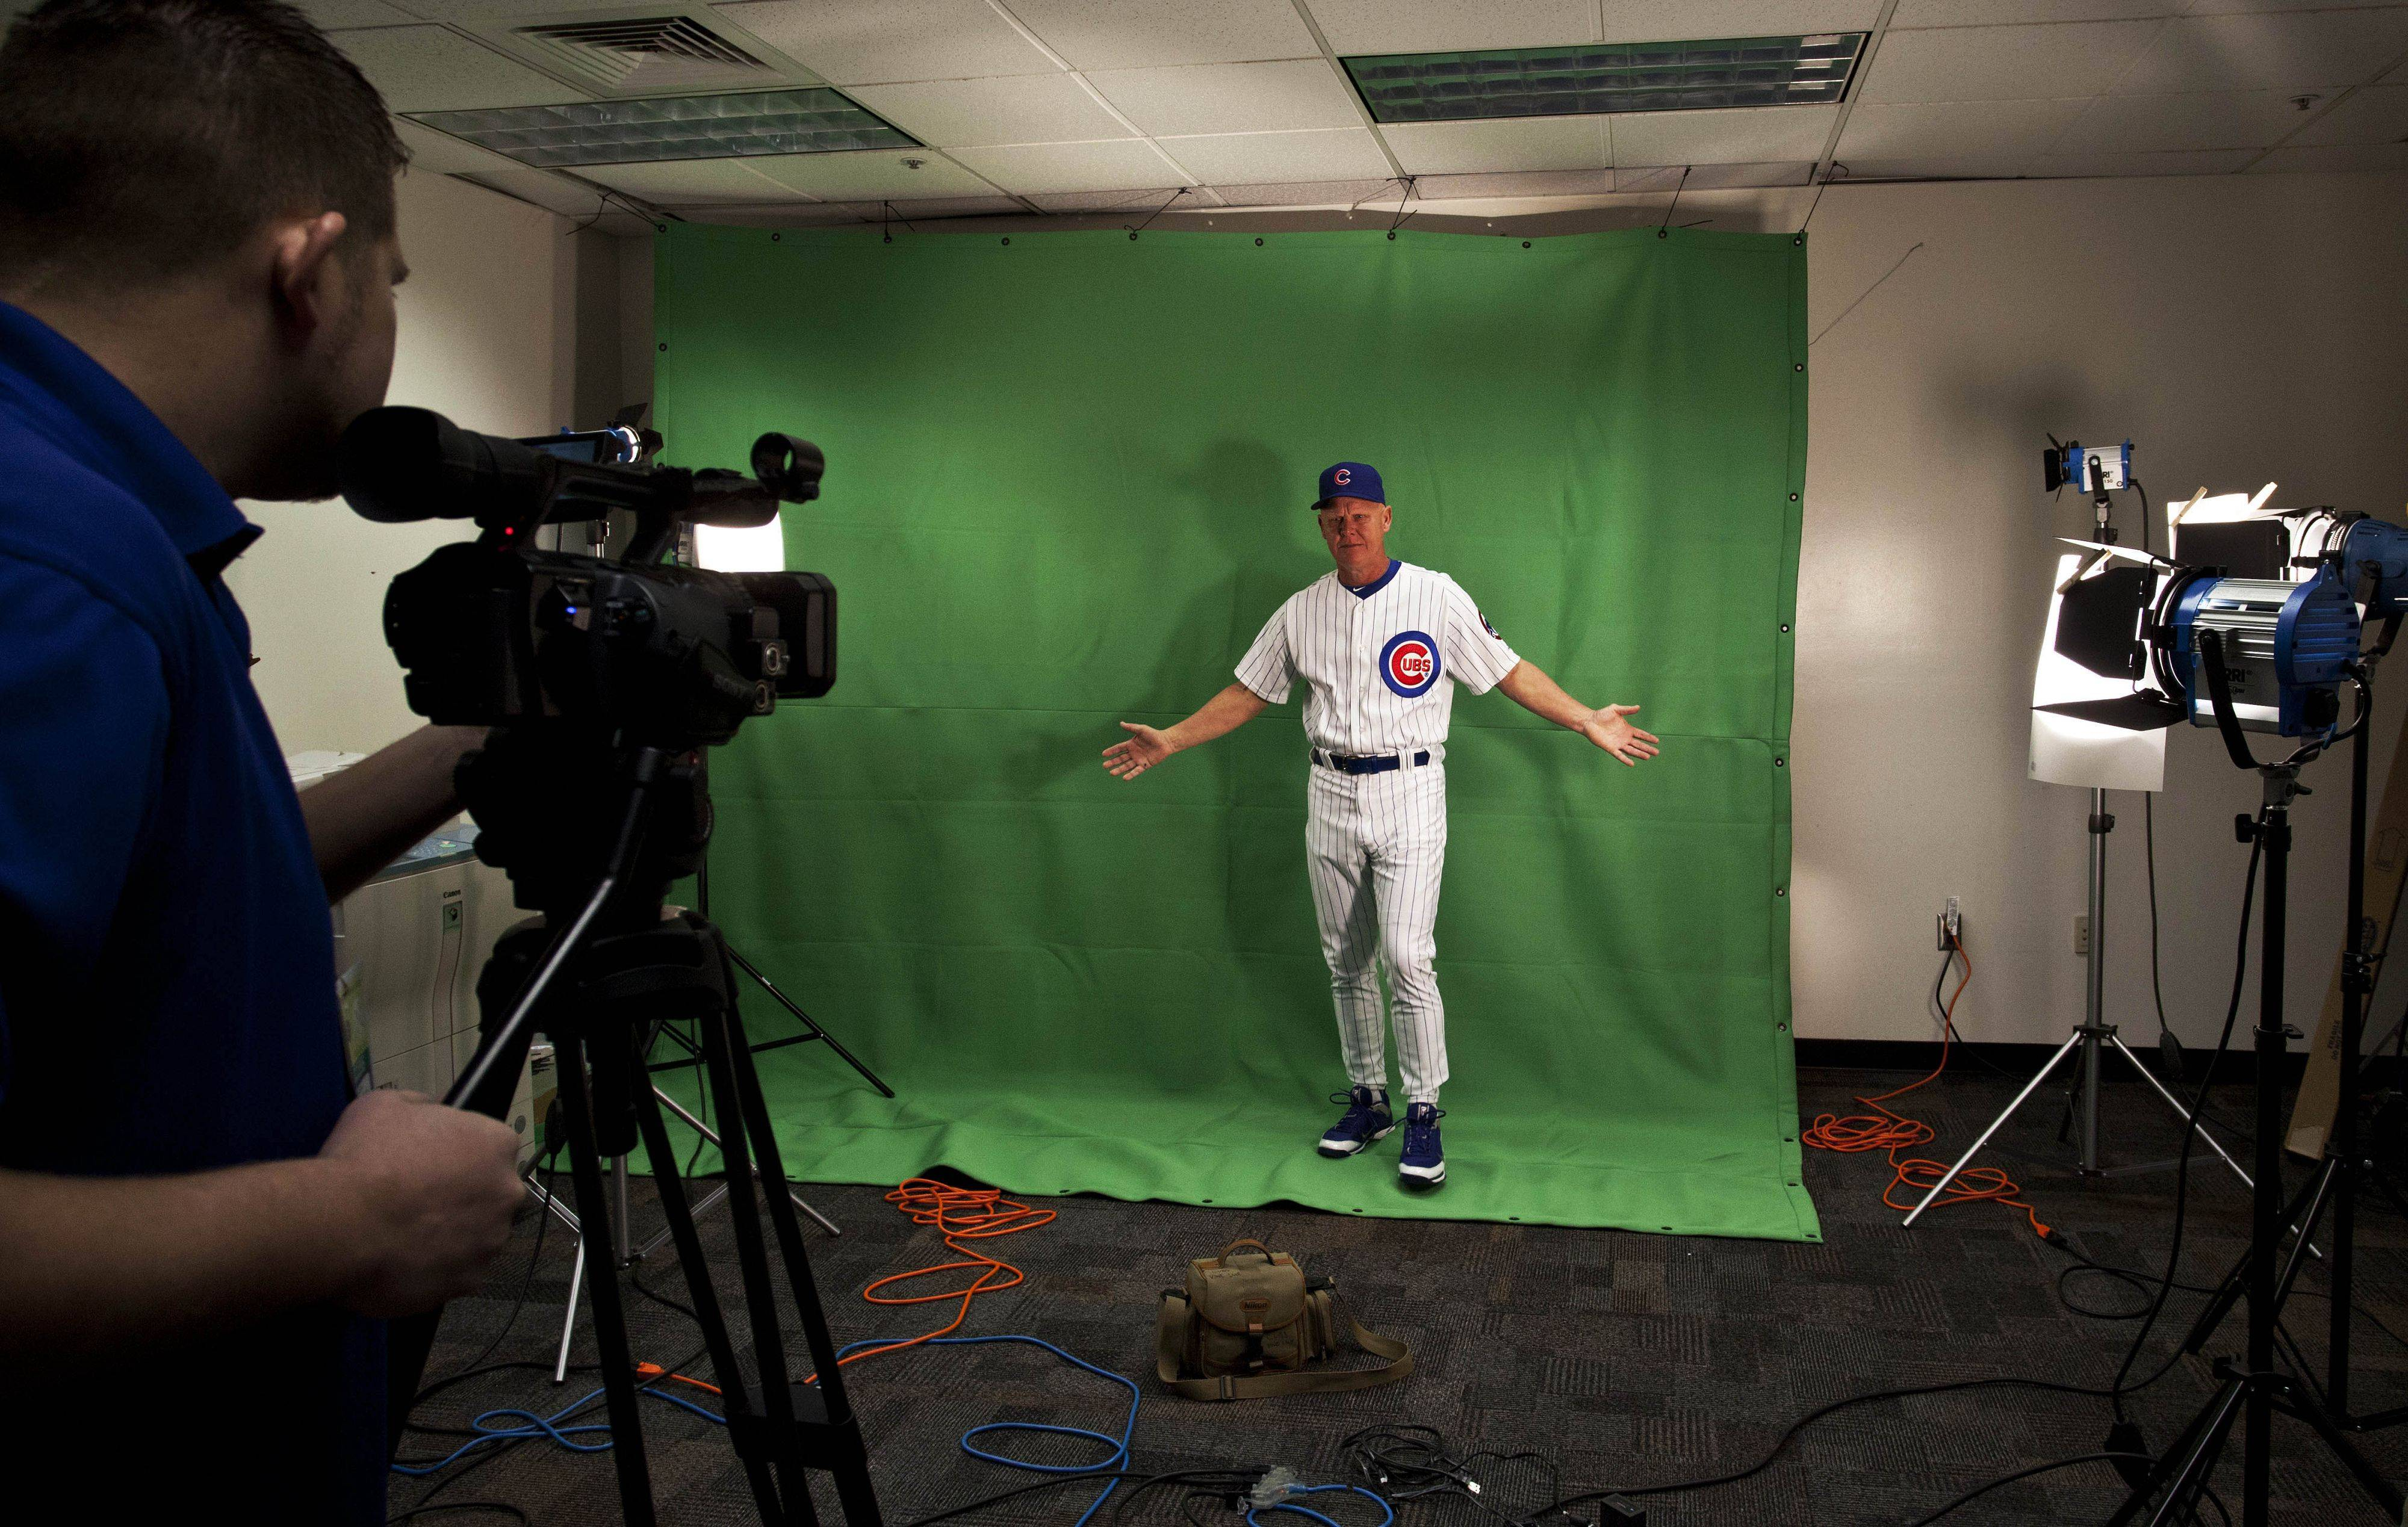 Chicago Cubs manager Mike Quade gestures during the baseball team's photo day at spring training, Tuesday, Feb. 22, 2011, in Mesa, Ariz.